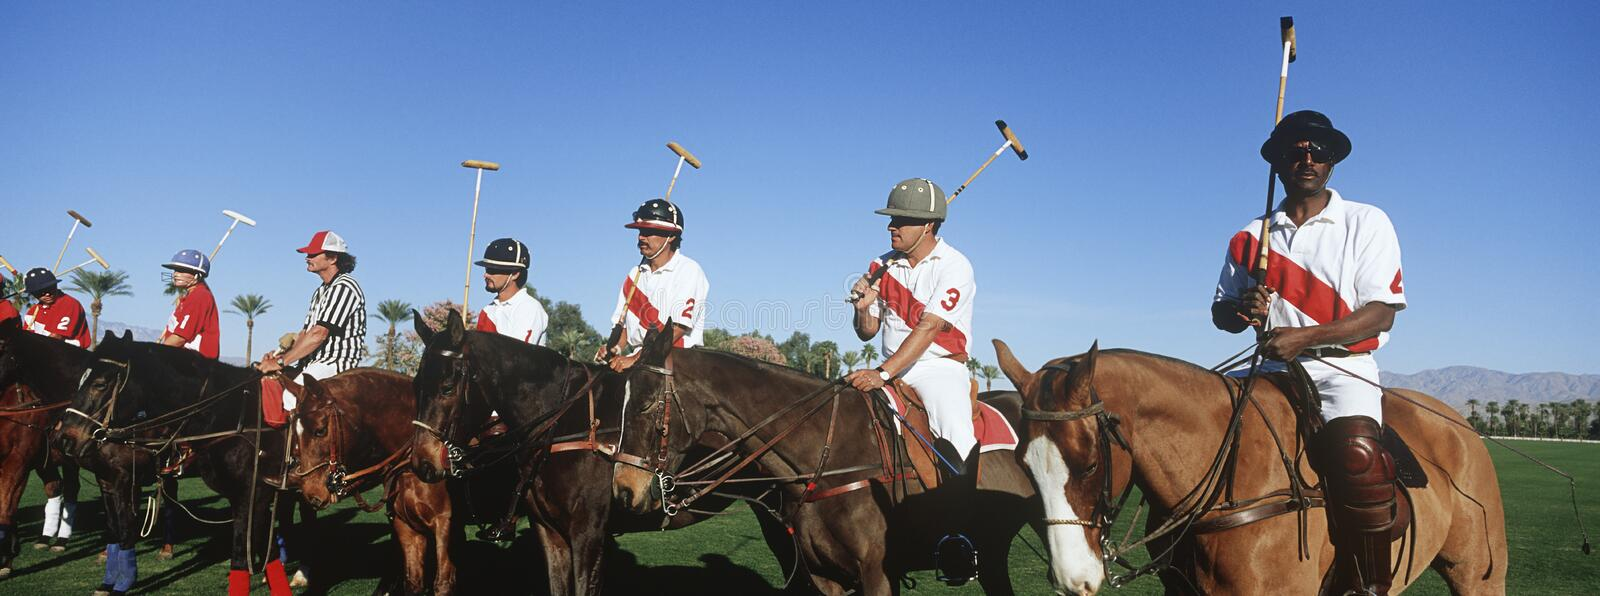 Polo Players And Umpire On Horses